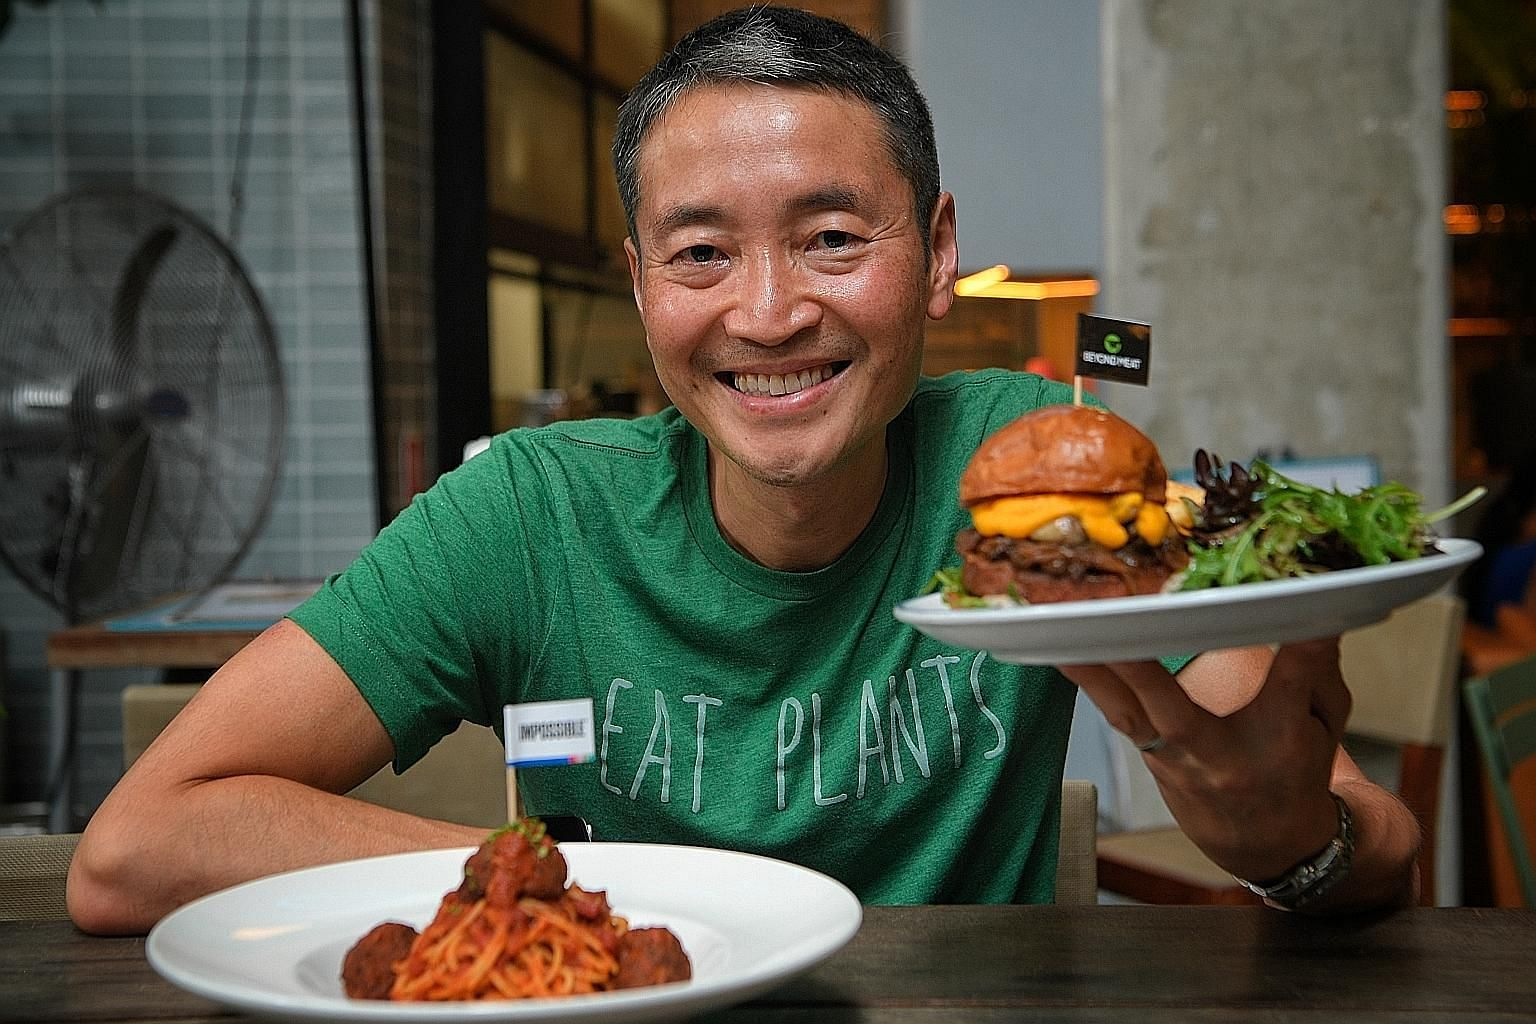 Mr Yuan Oeij, chairman of The Prive Group, with its Impossible Meatball Spaghetti and a burger with a Beyond Meat Patty. Restaurateurs must come up with innovative dishes with the meat alternatives so as to keep patrons interested, he says.